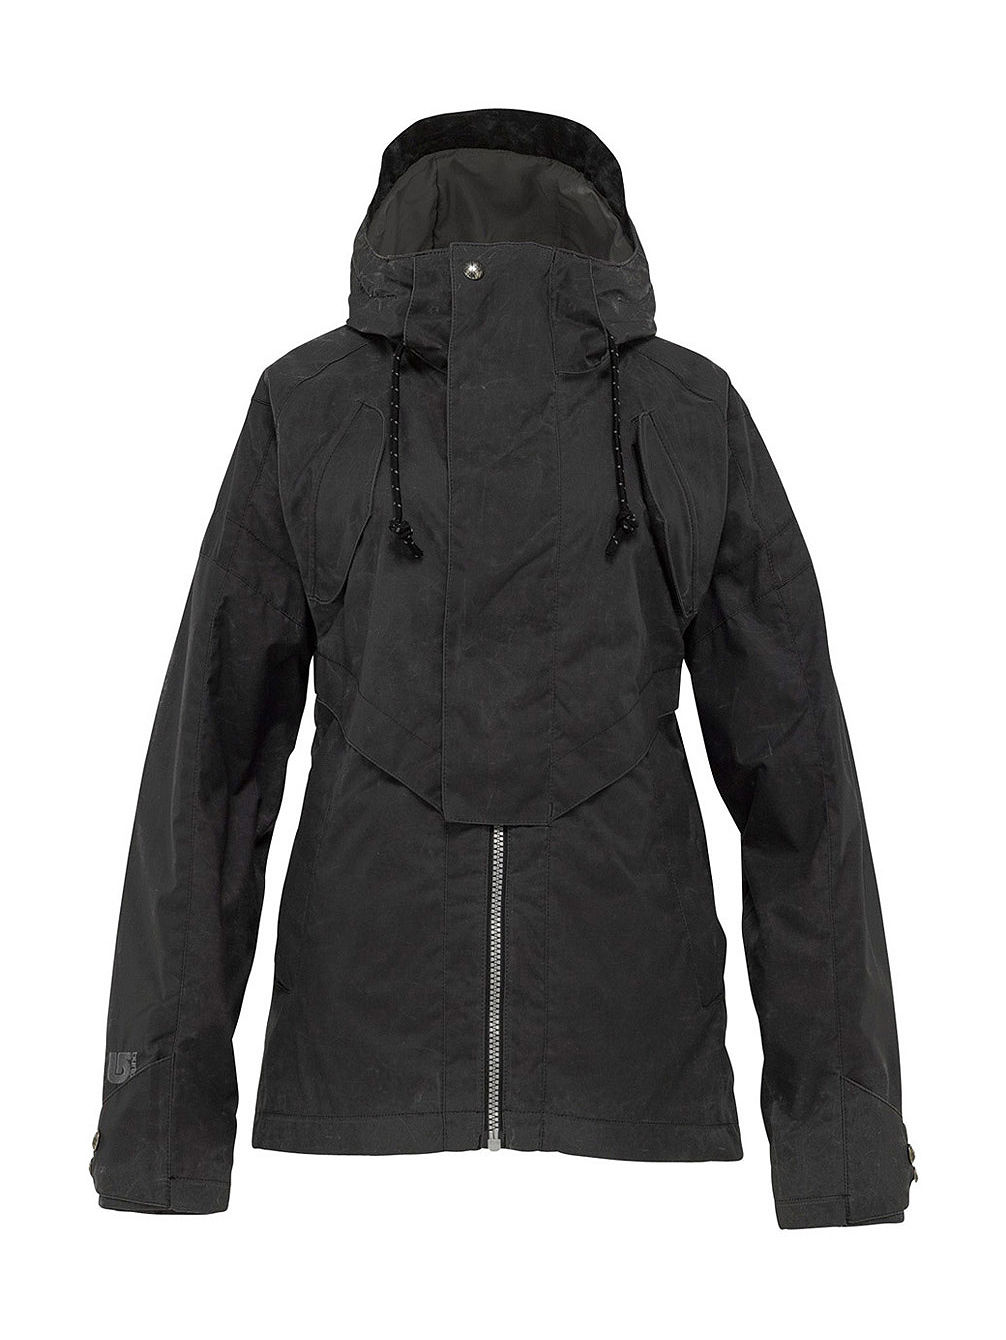 Credence Jacket Women